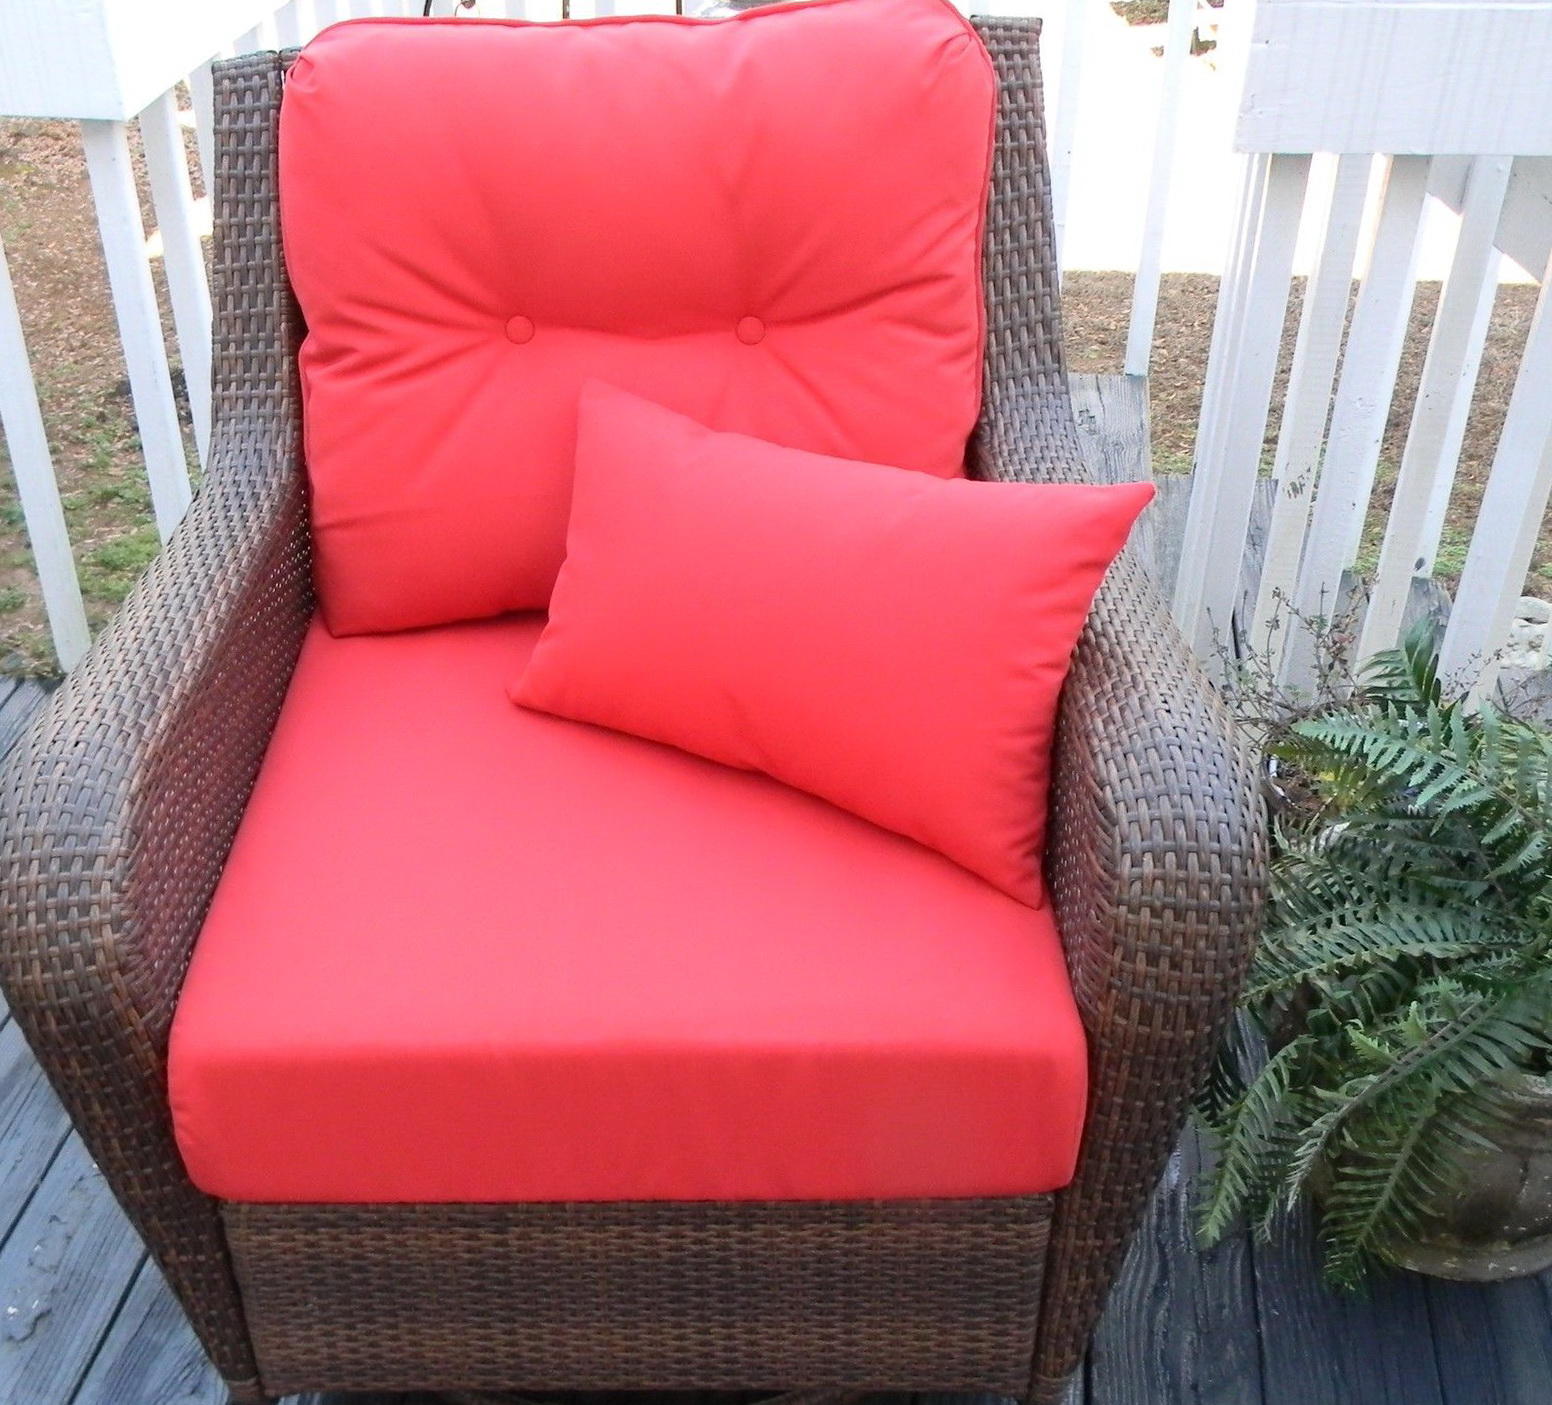 Outdoor Deep Seat Cushions Sale Home Design Ideas